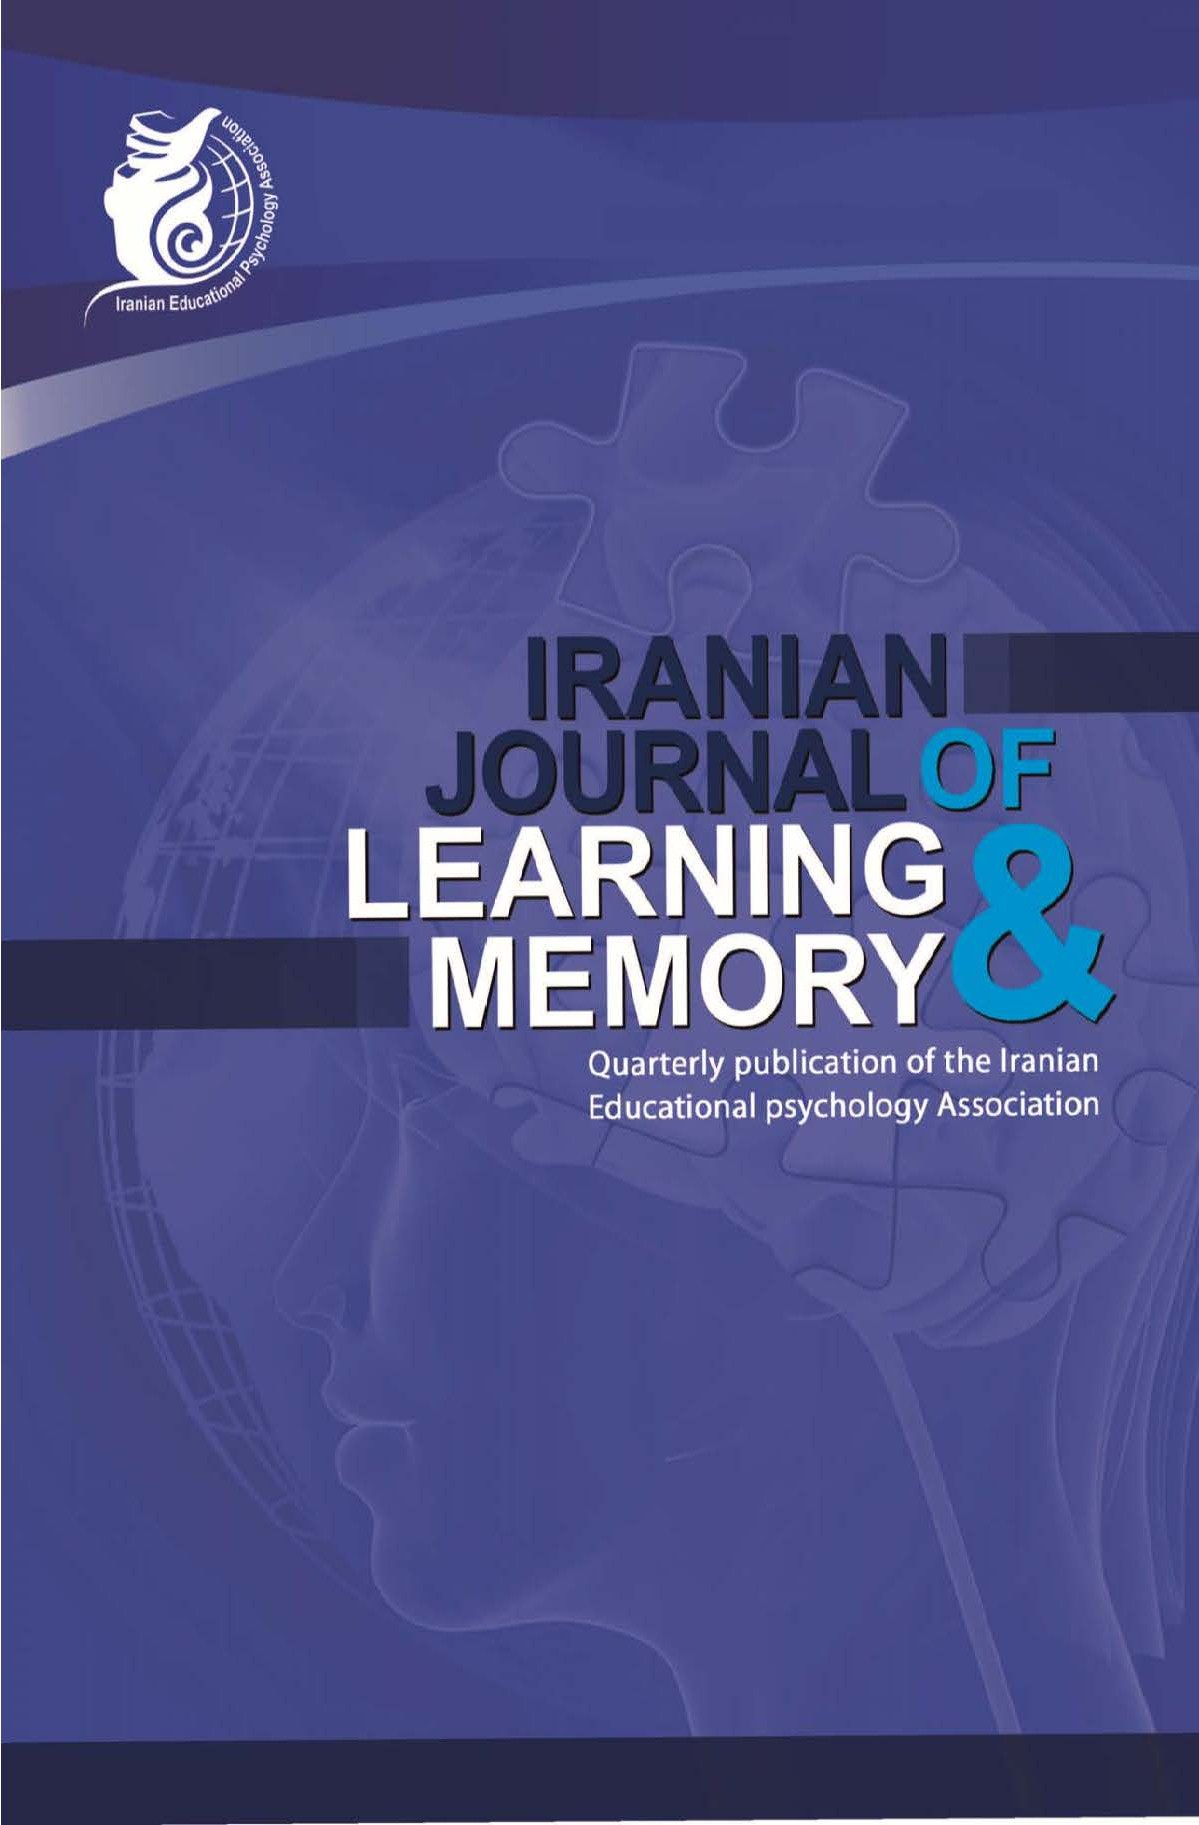 Iranian journal of Learning and Memory